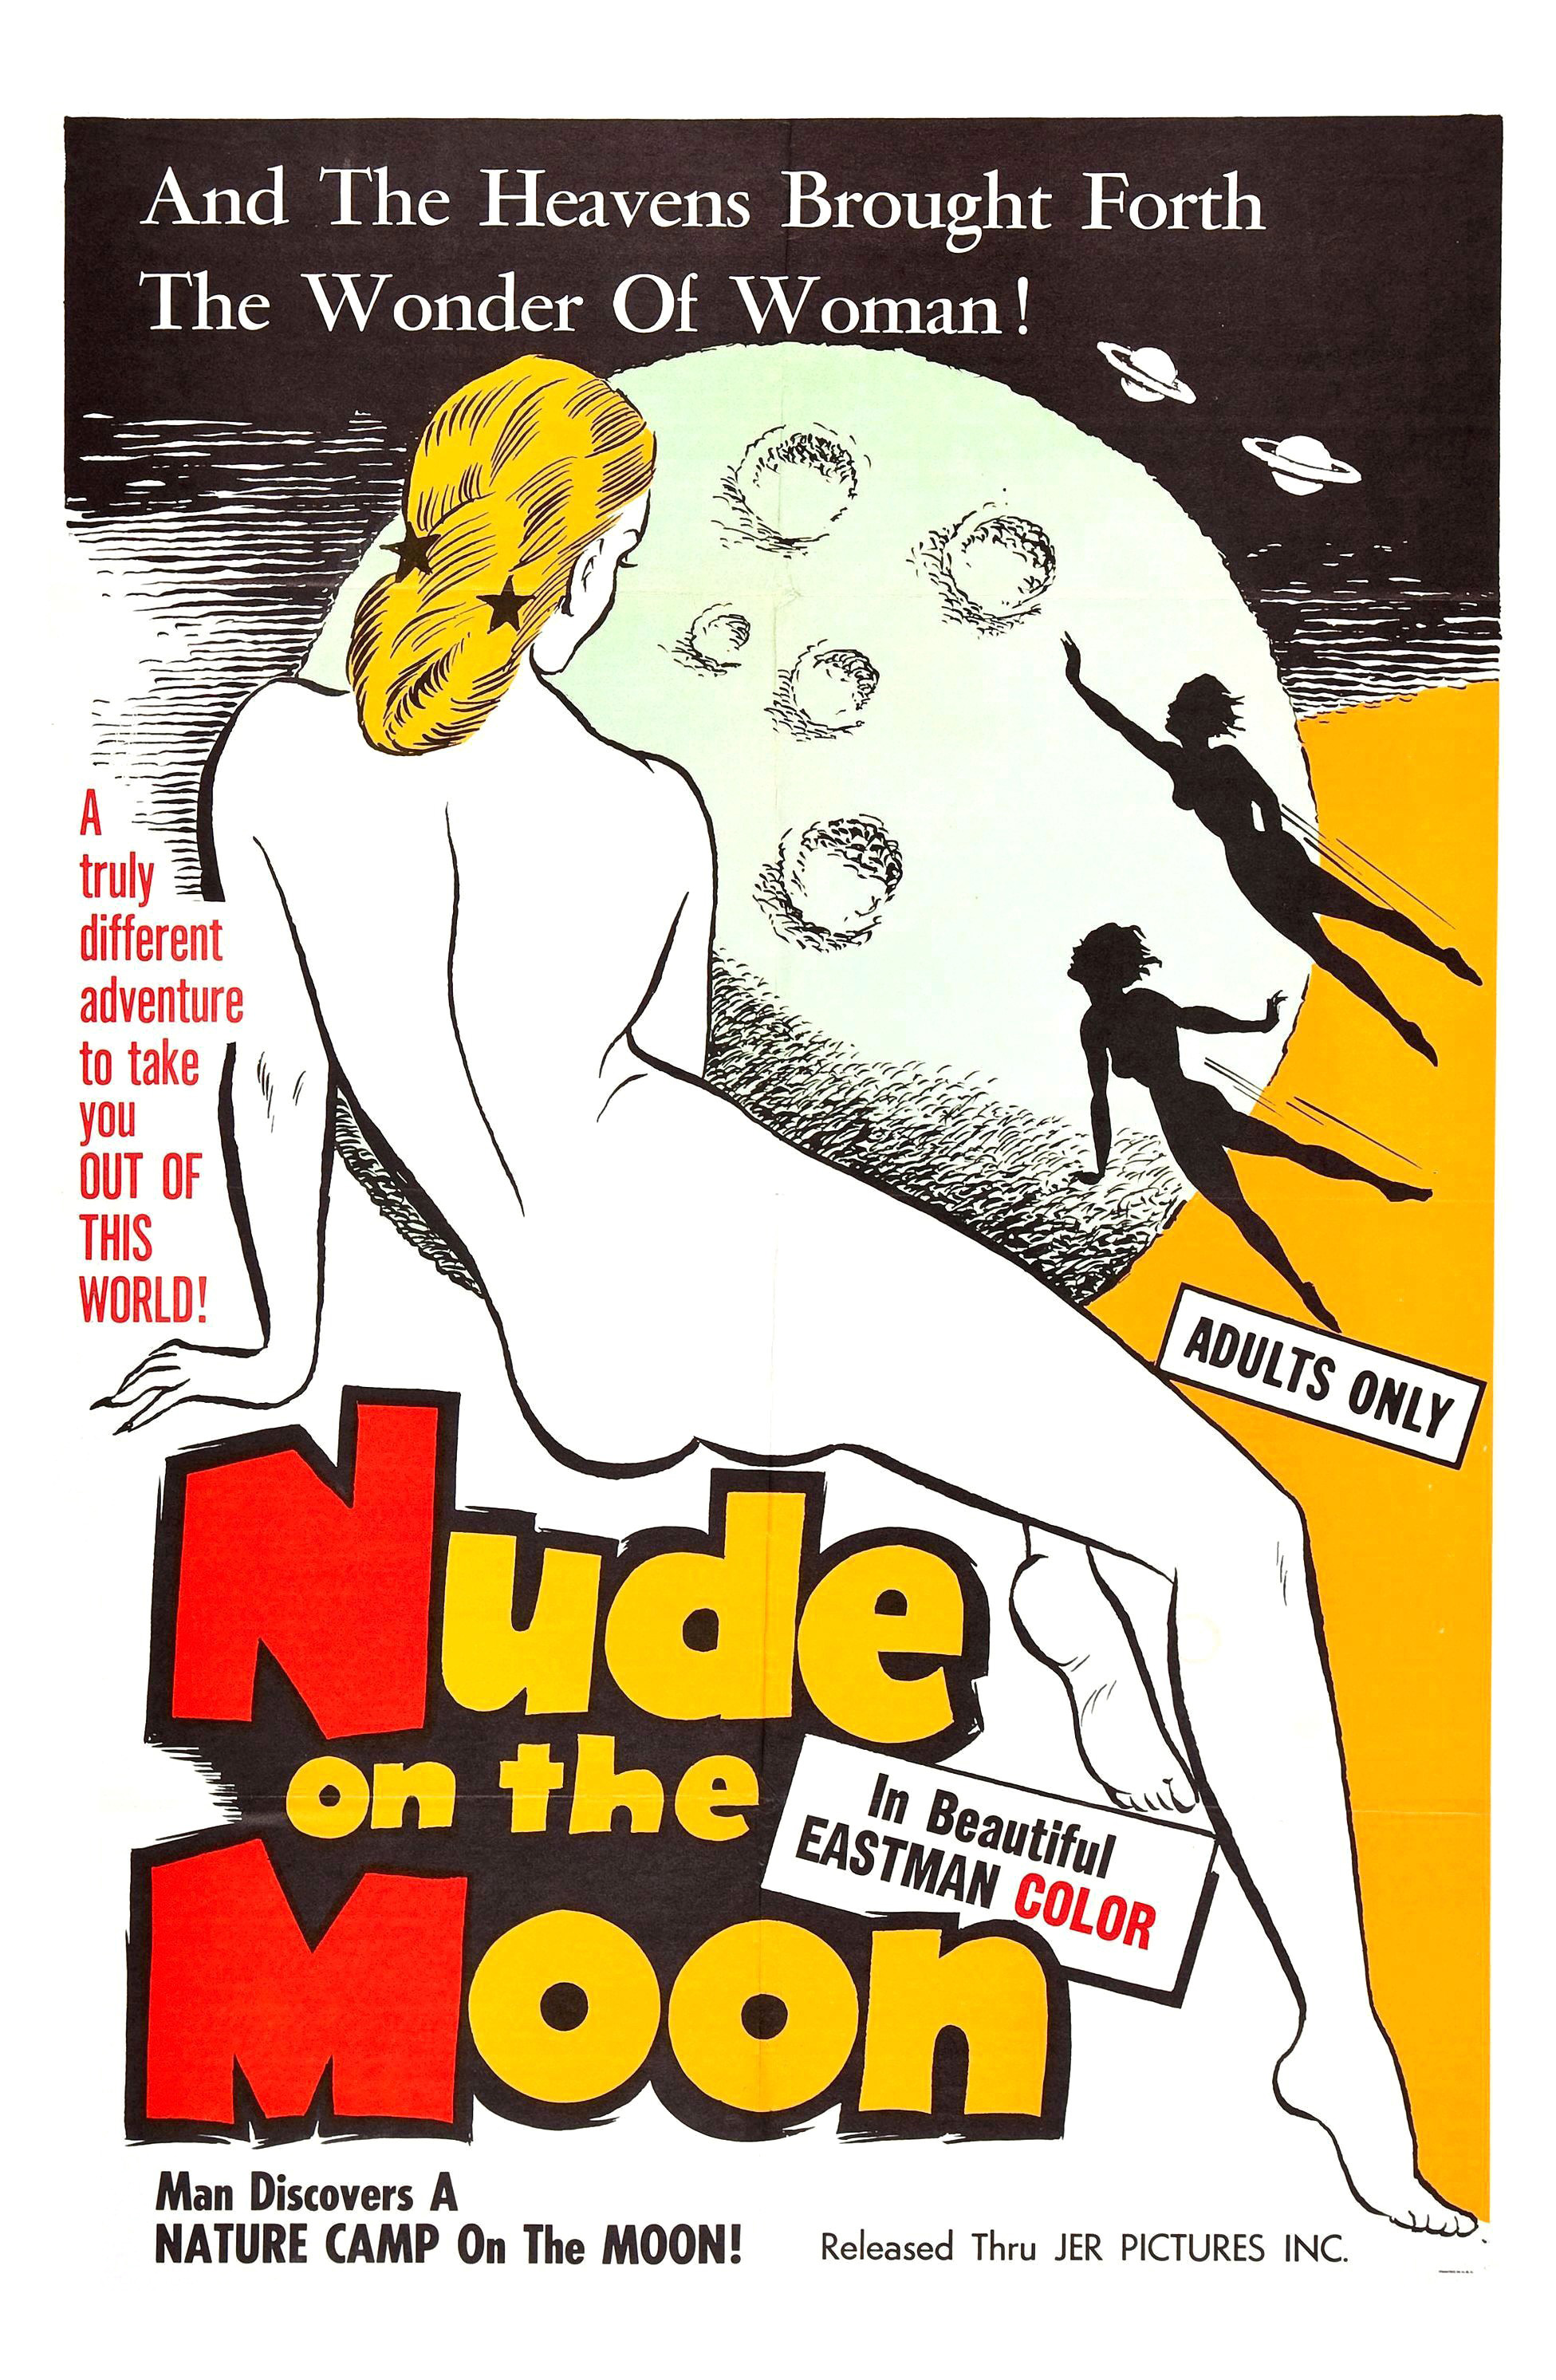 Nudity in film